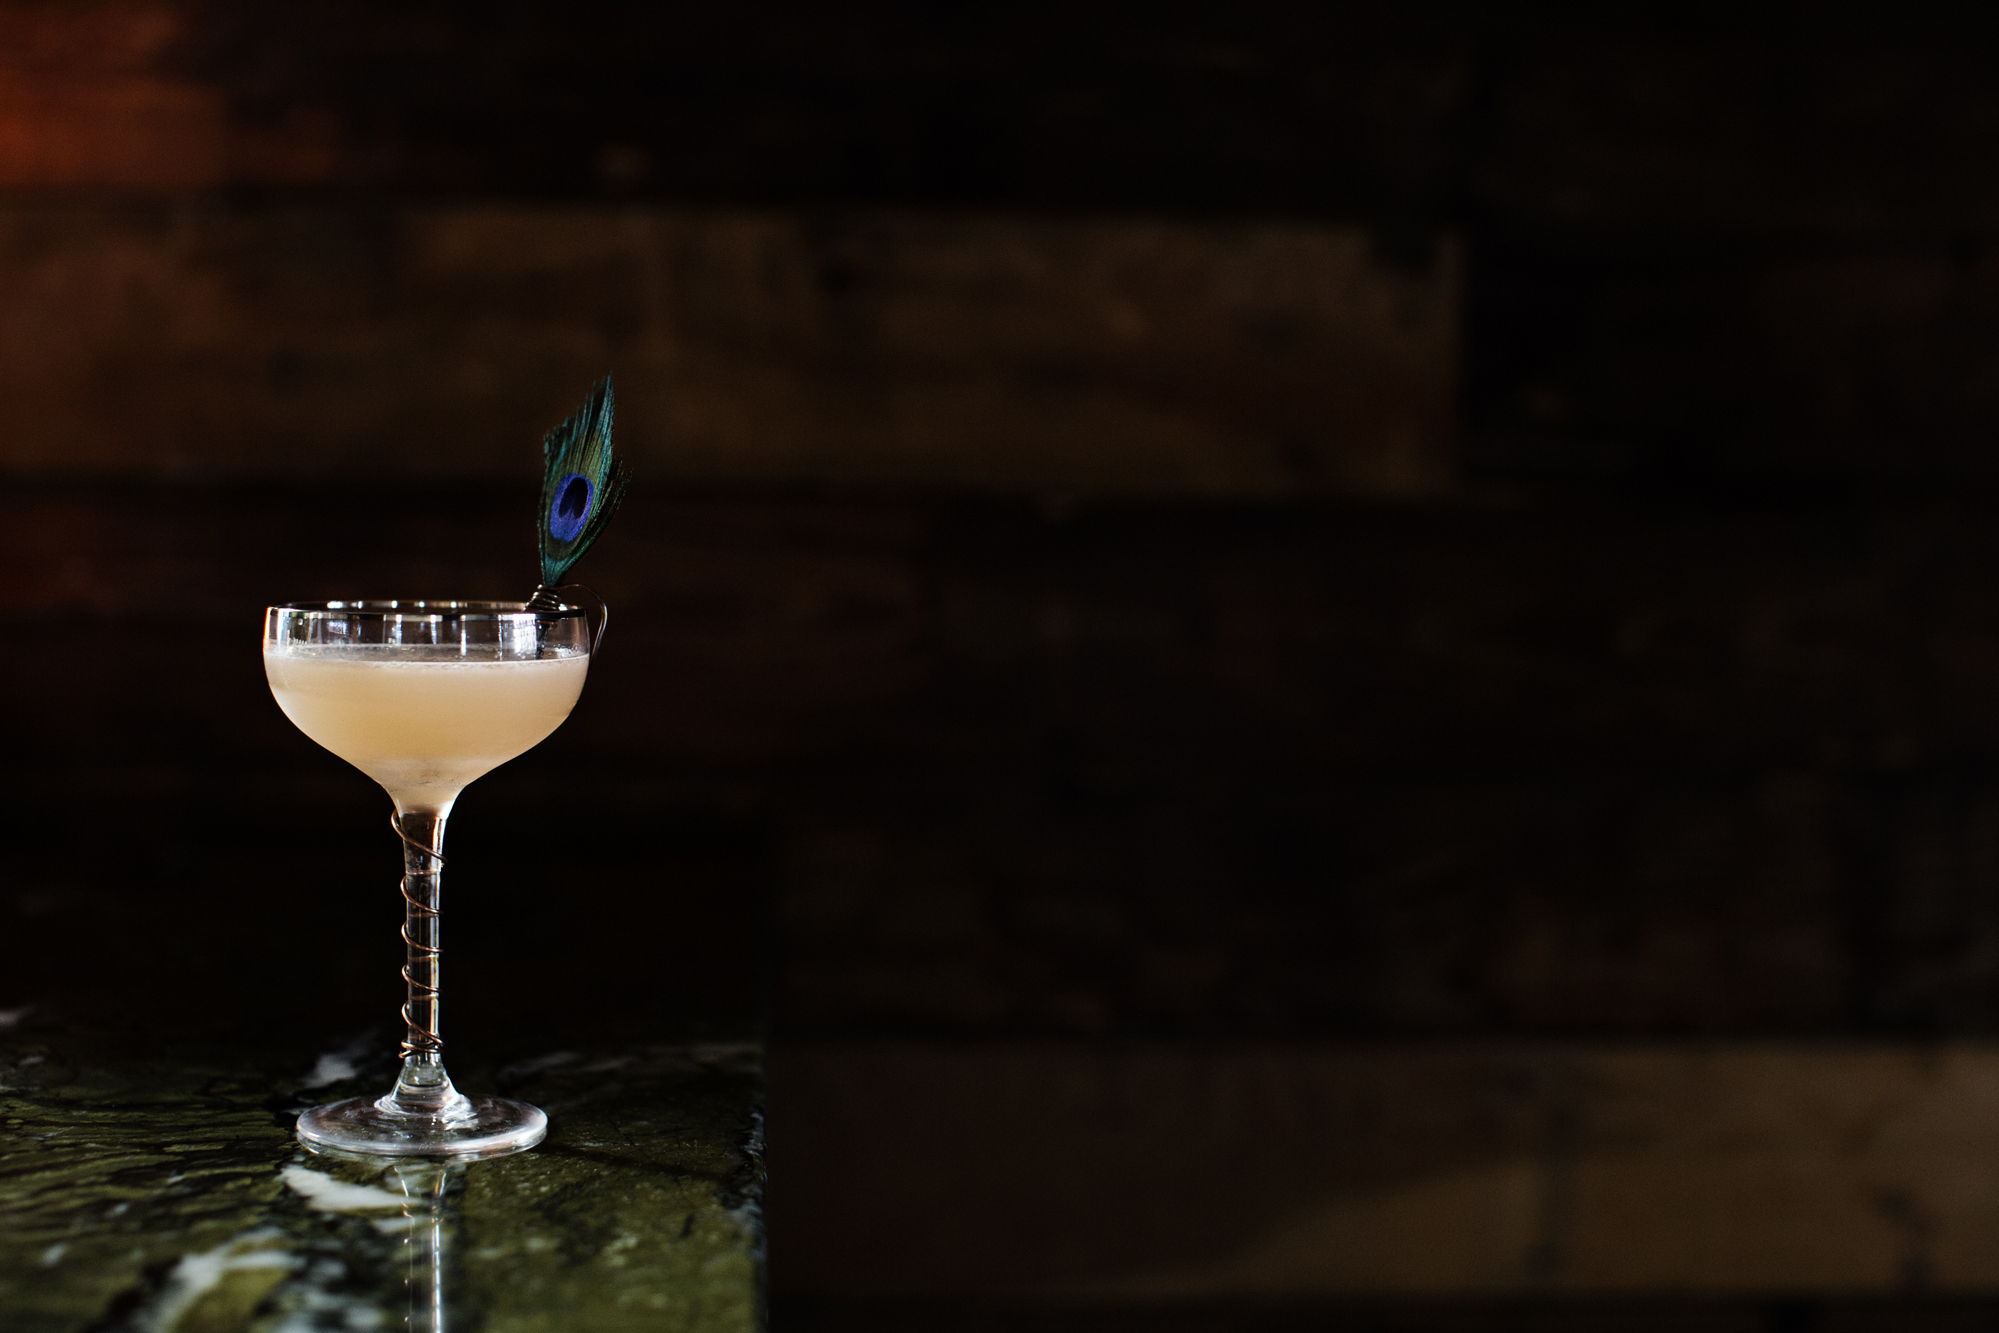 A cocktail on the bar | Martina | The Restaurant Project